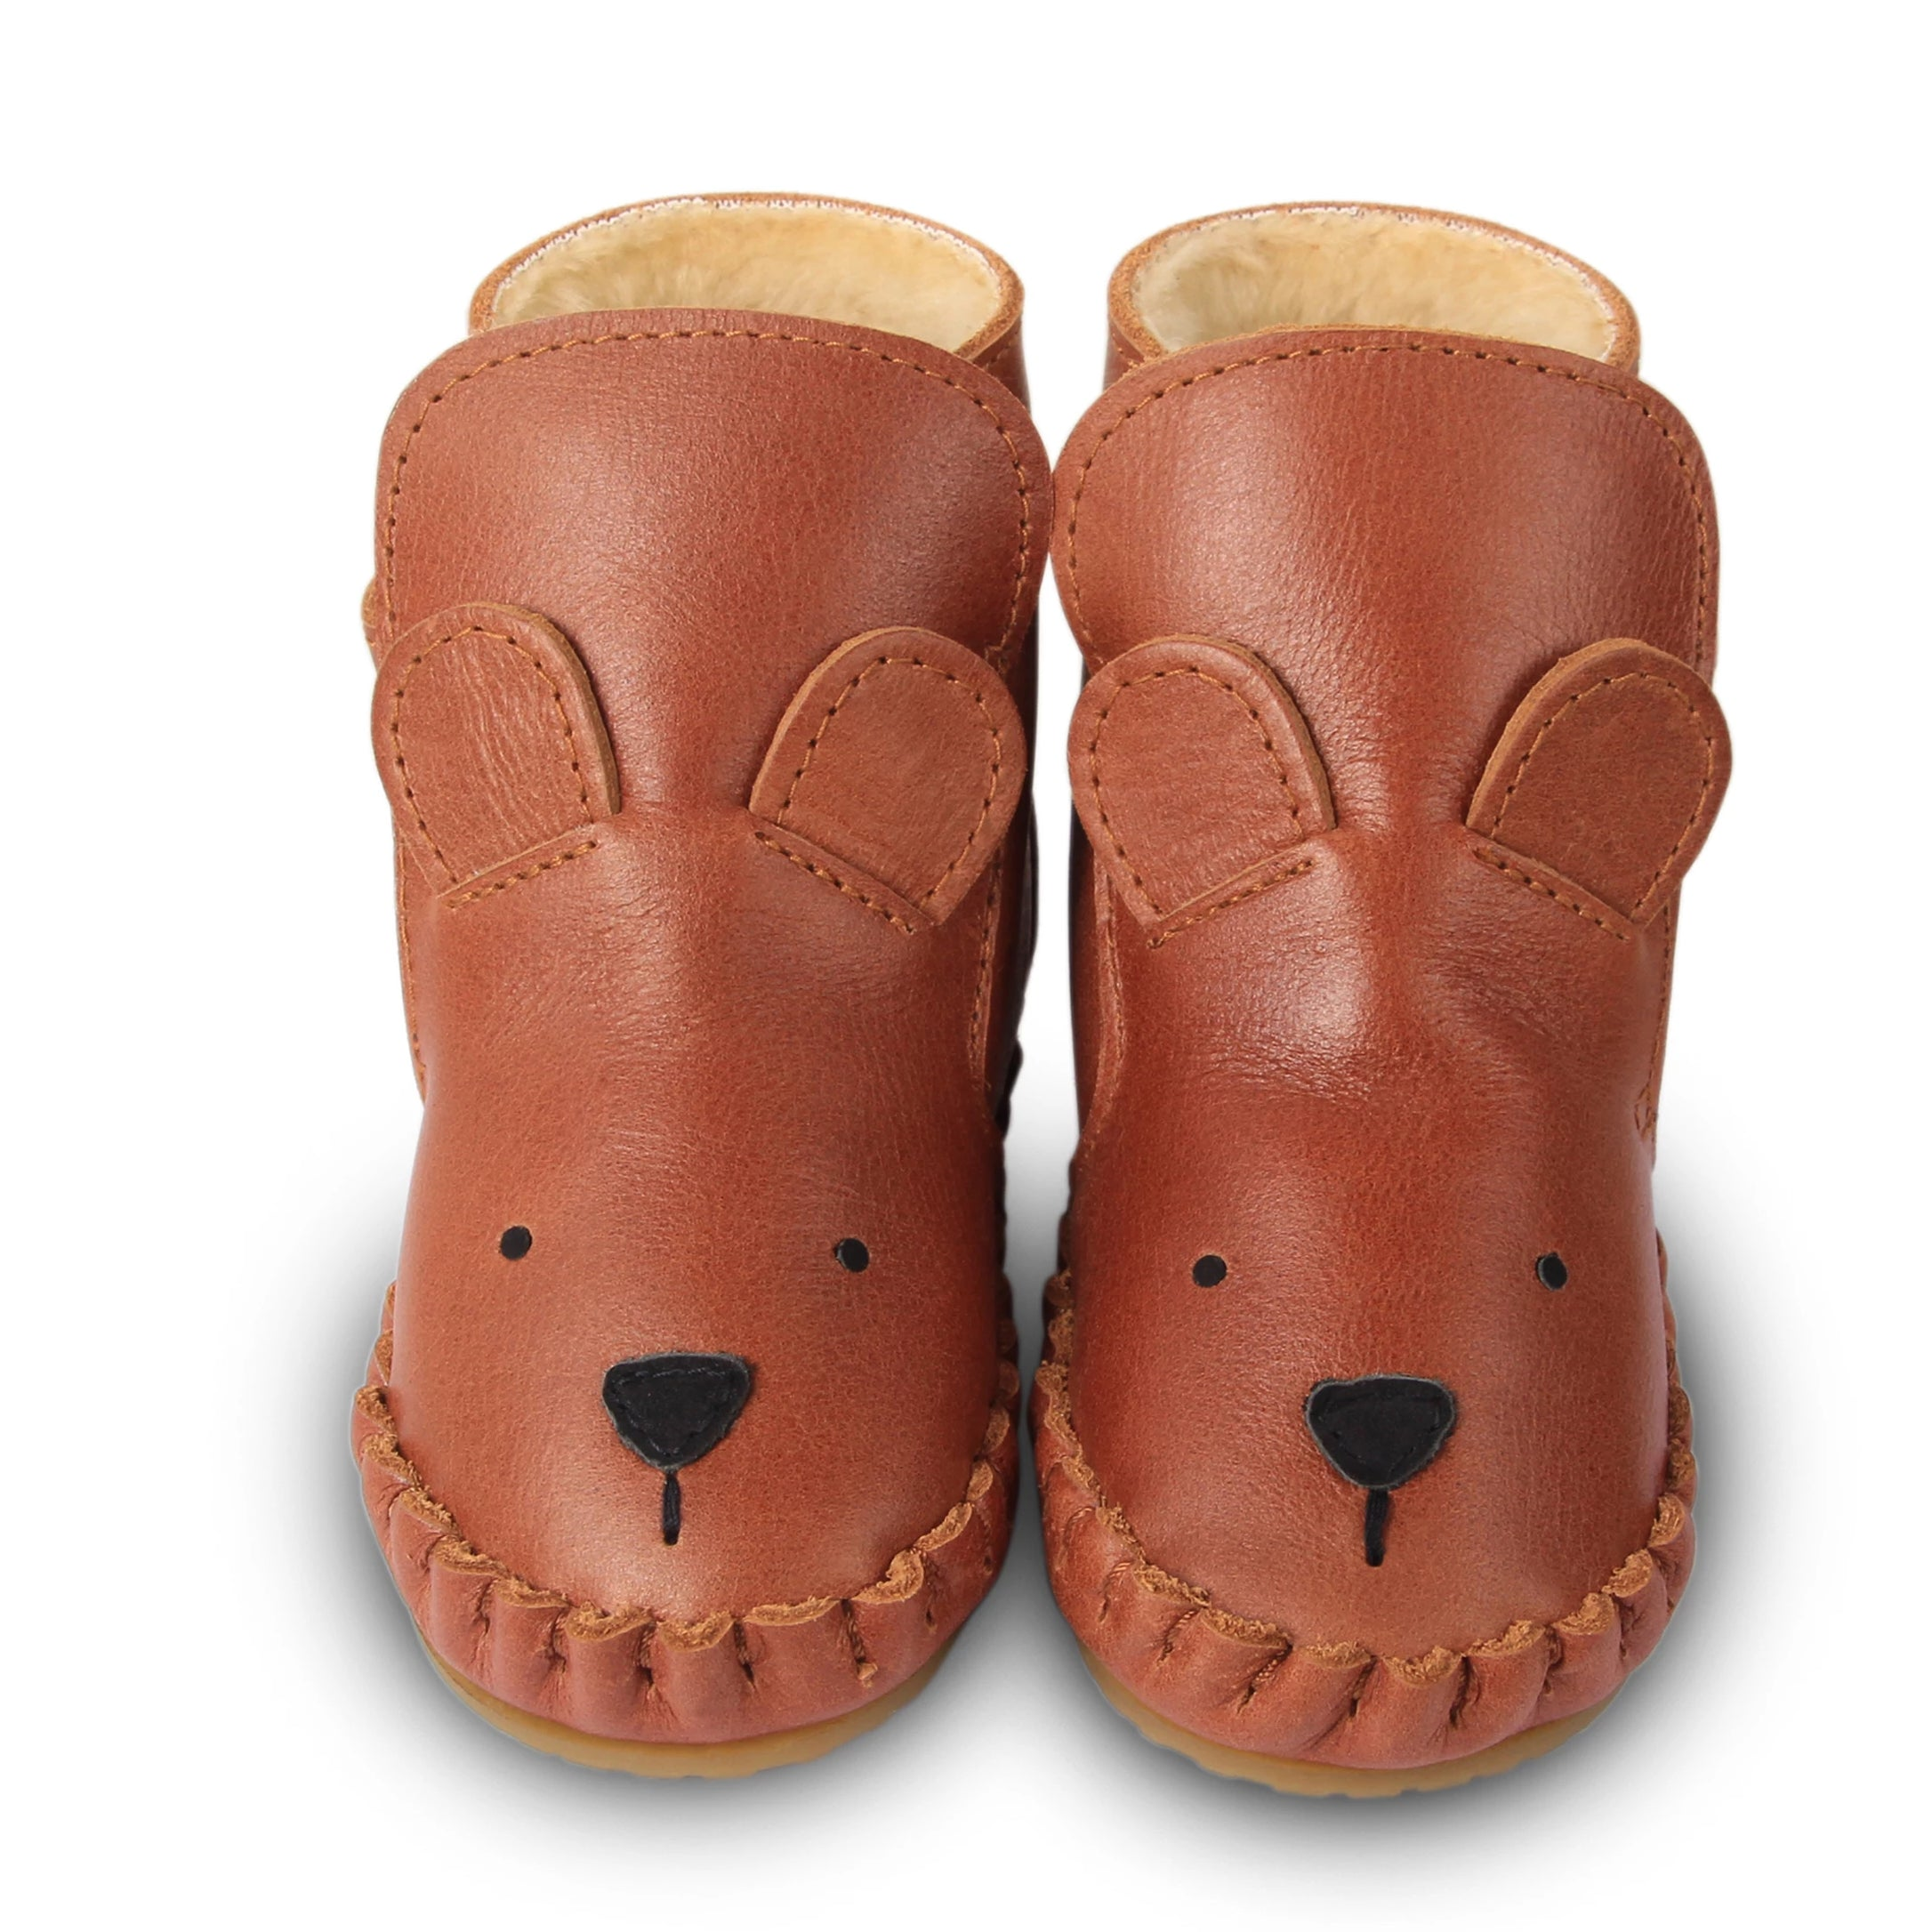 Donsje Lined Baby Boots in Bear at Bonjour Baby Baskets. Perfect addition to your BYOB (Build Your Own Basket)